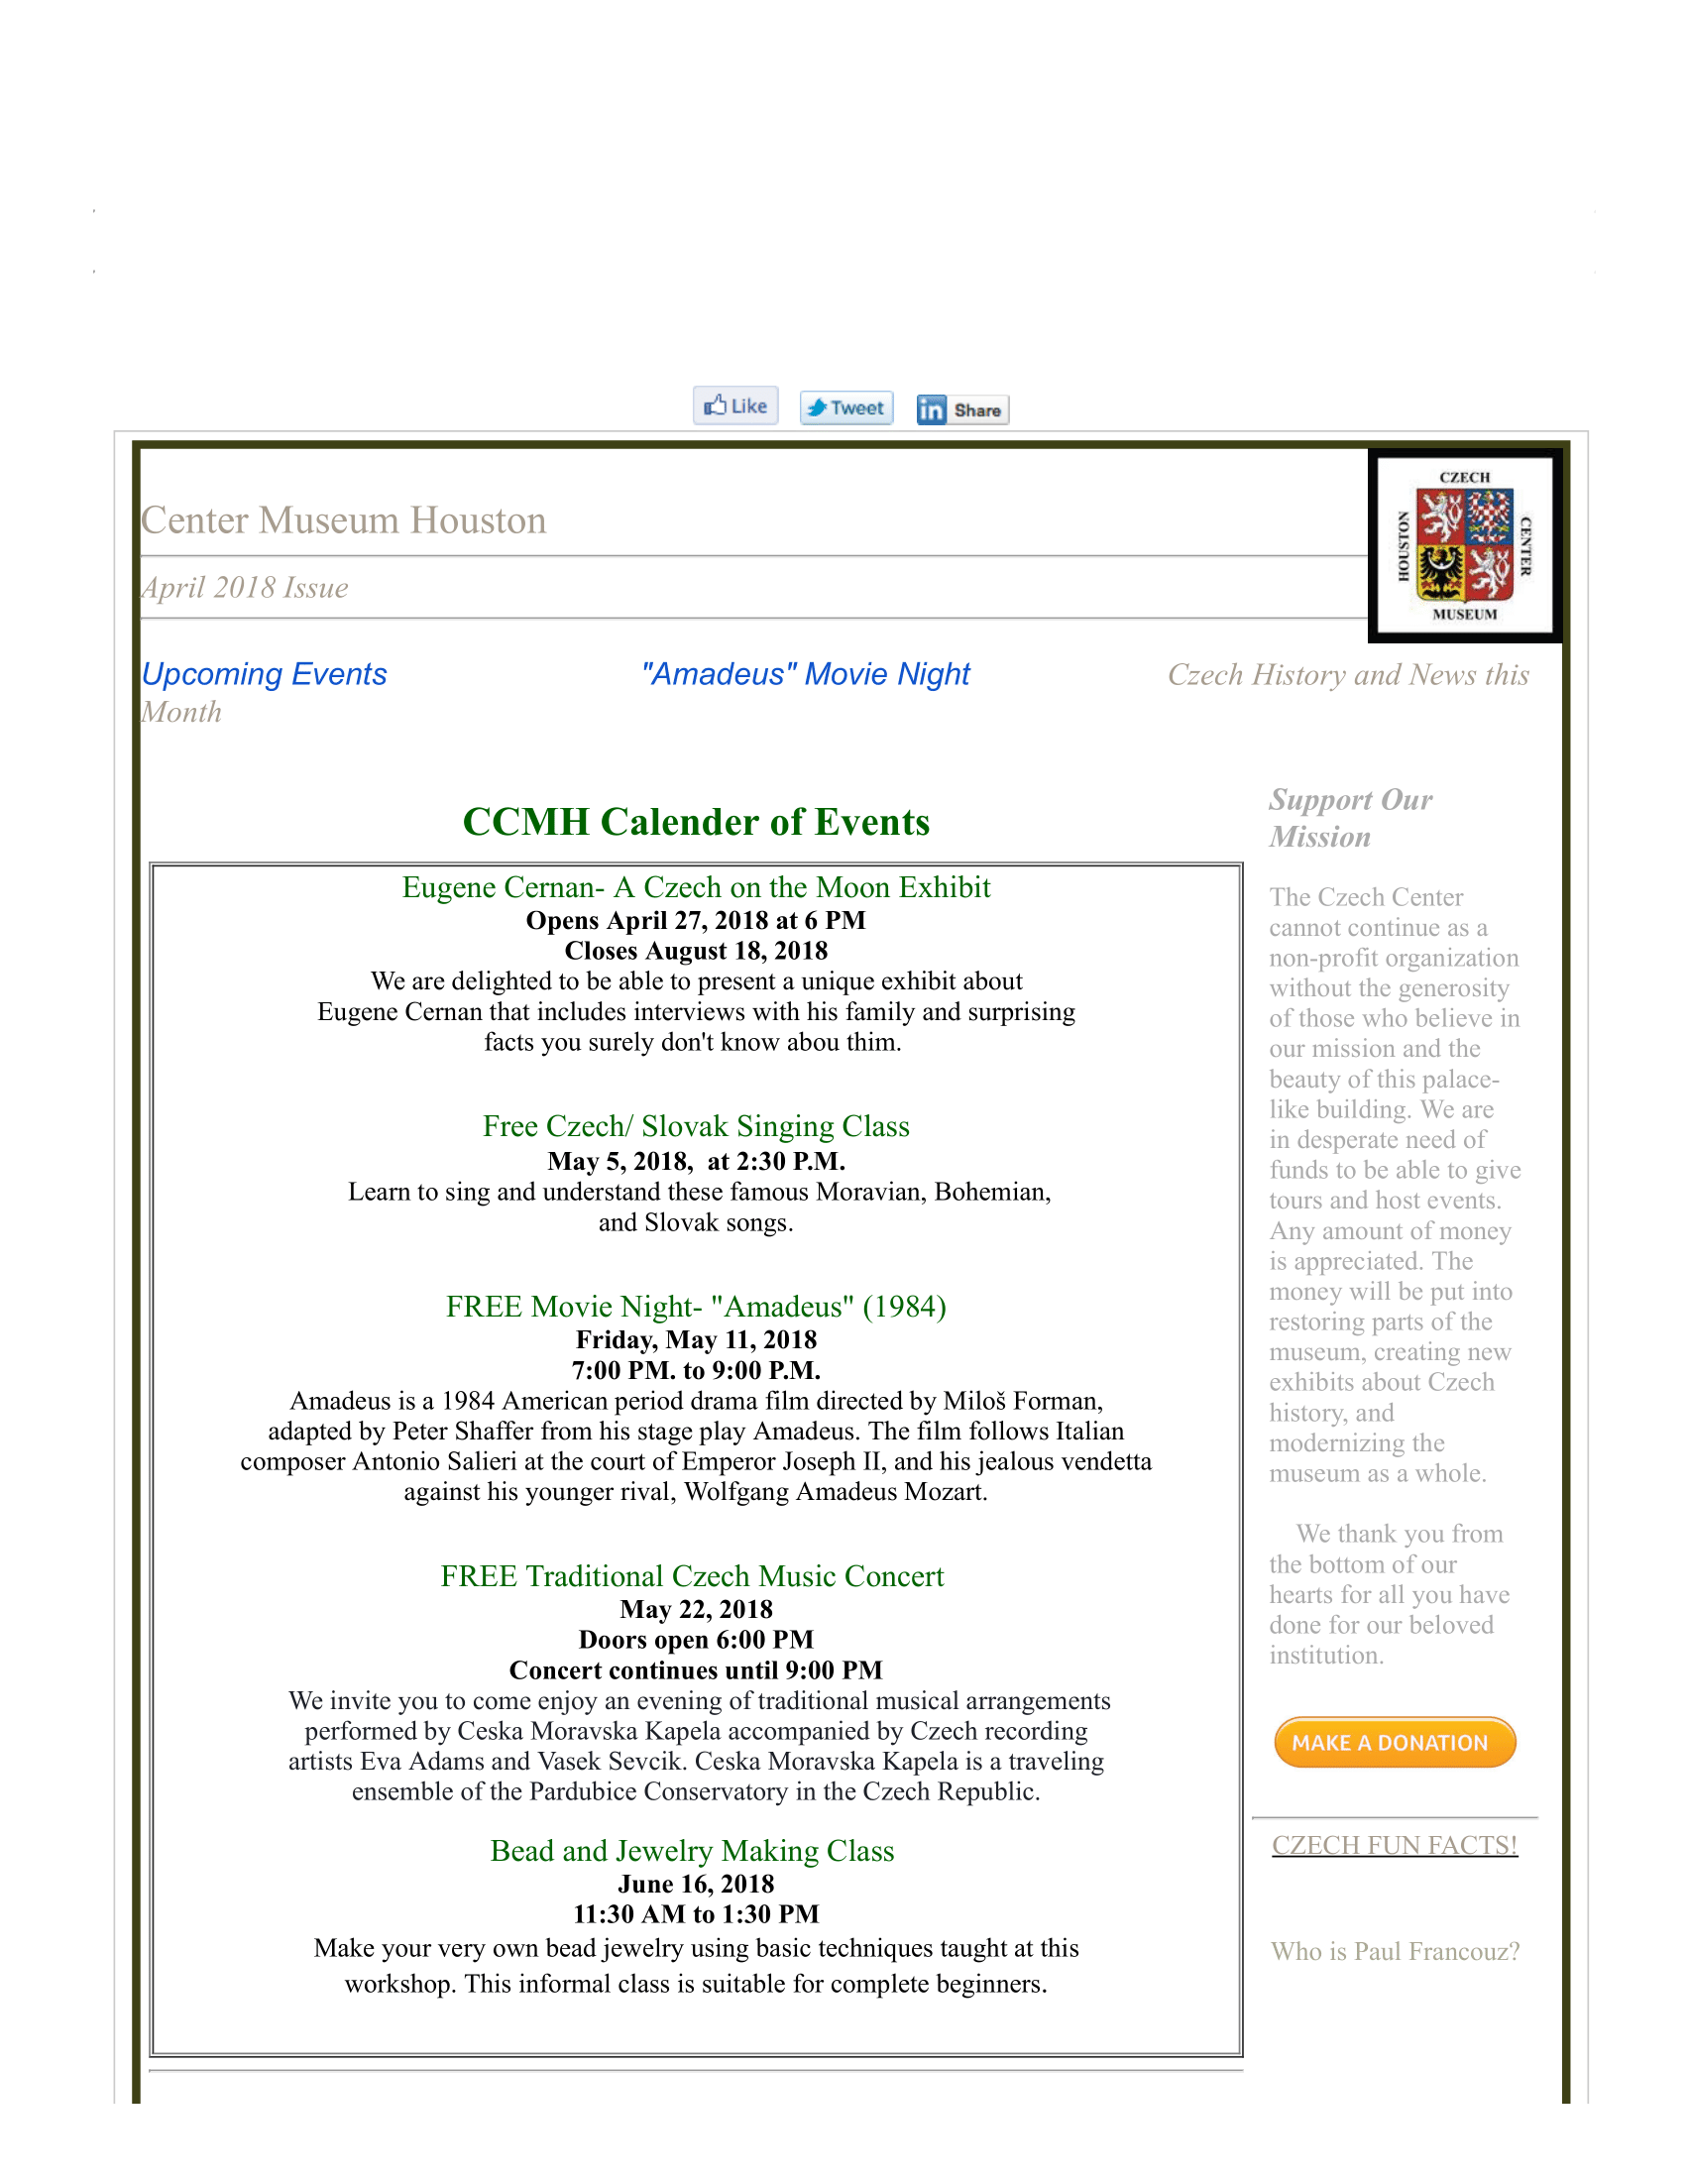 Czech Center Museum Houston Mail - April 2018 CCMH Newsletter-1.png